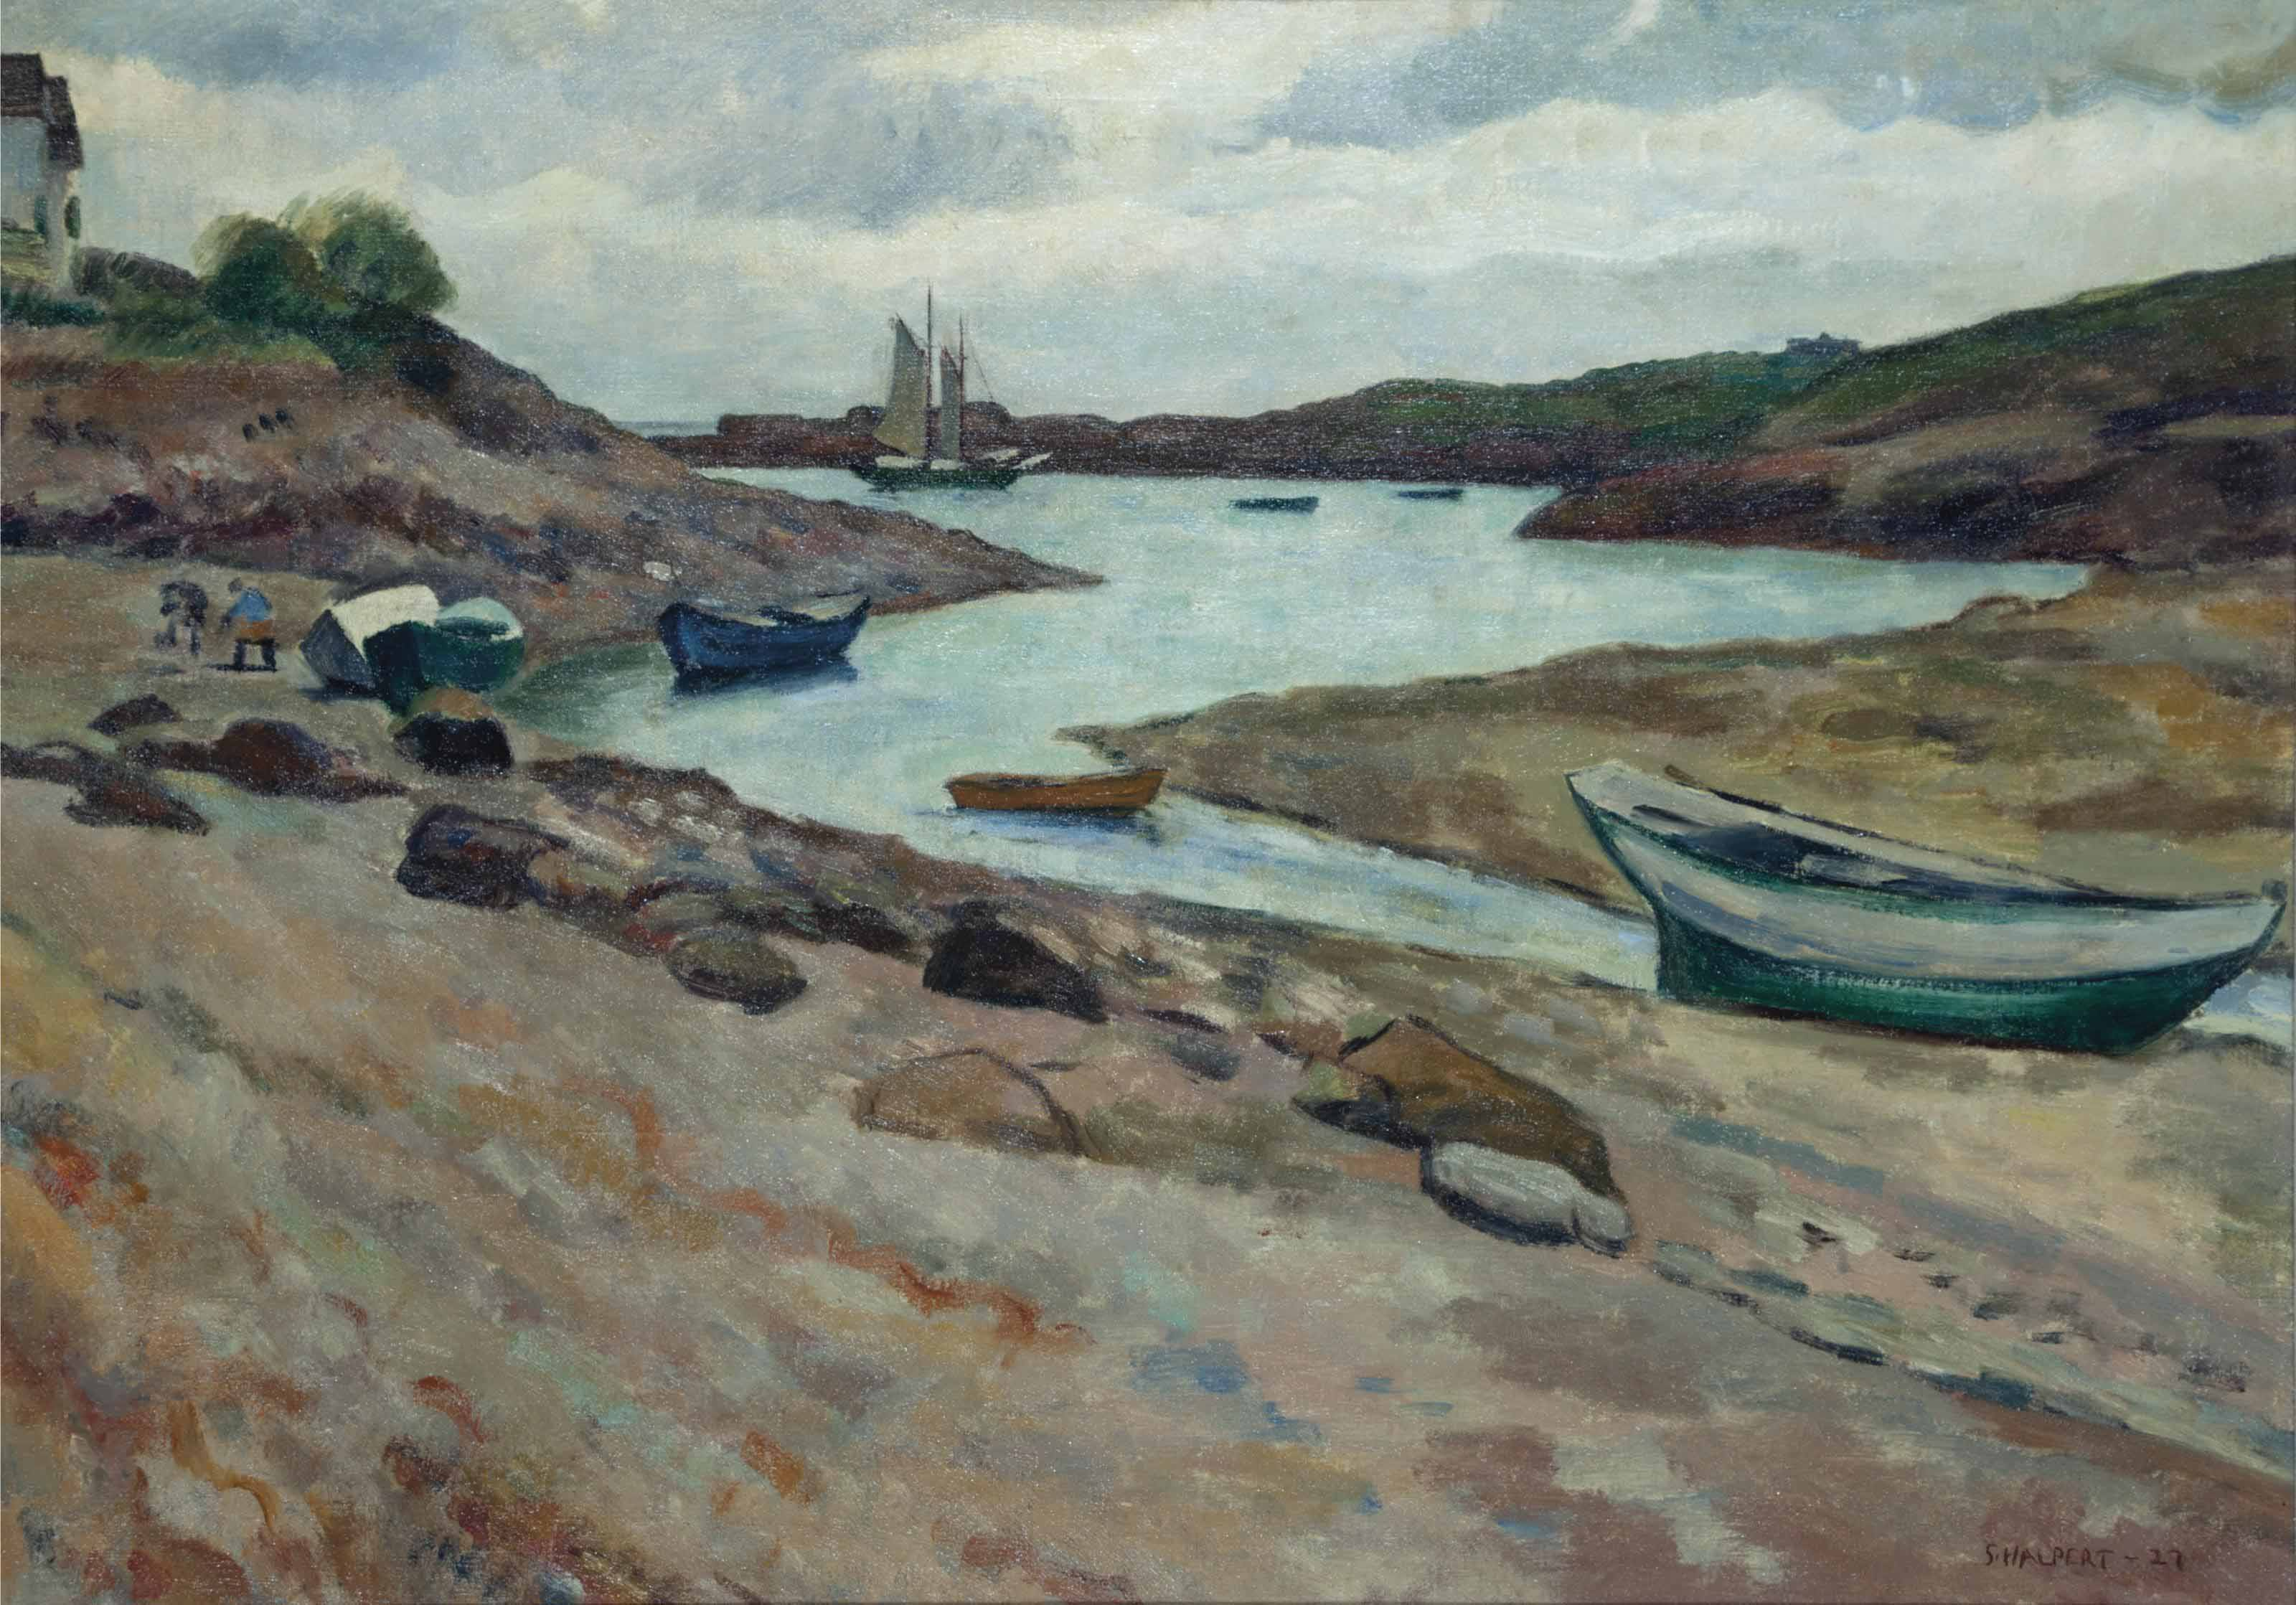 Boats in an inlet